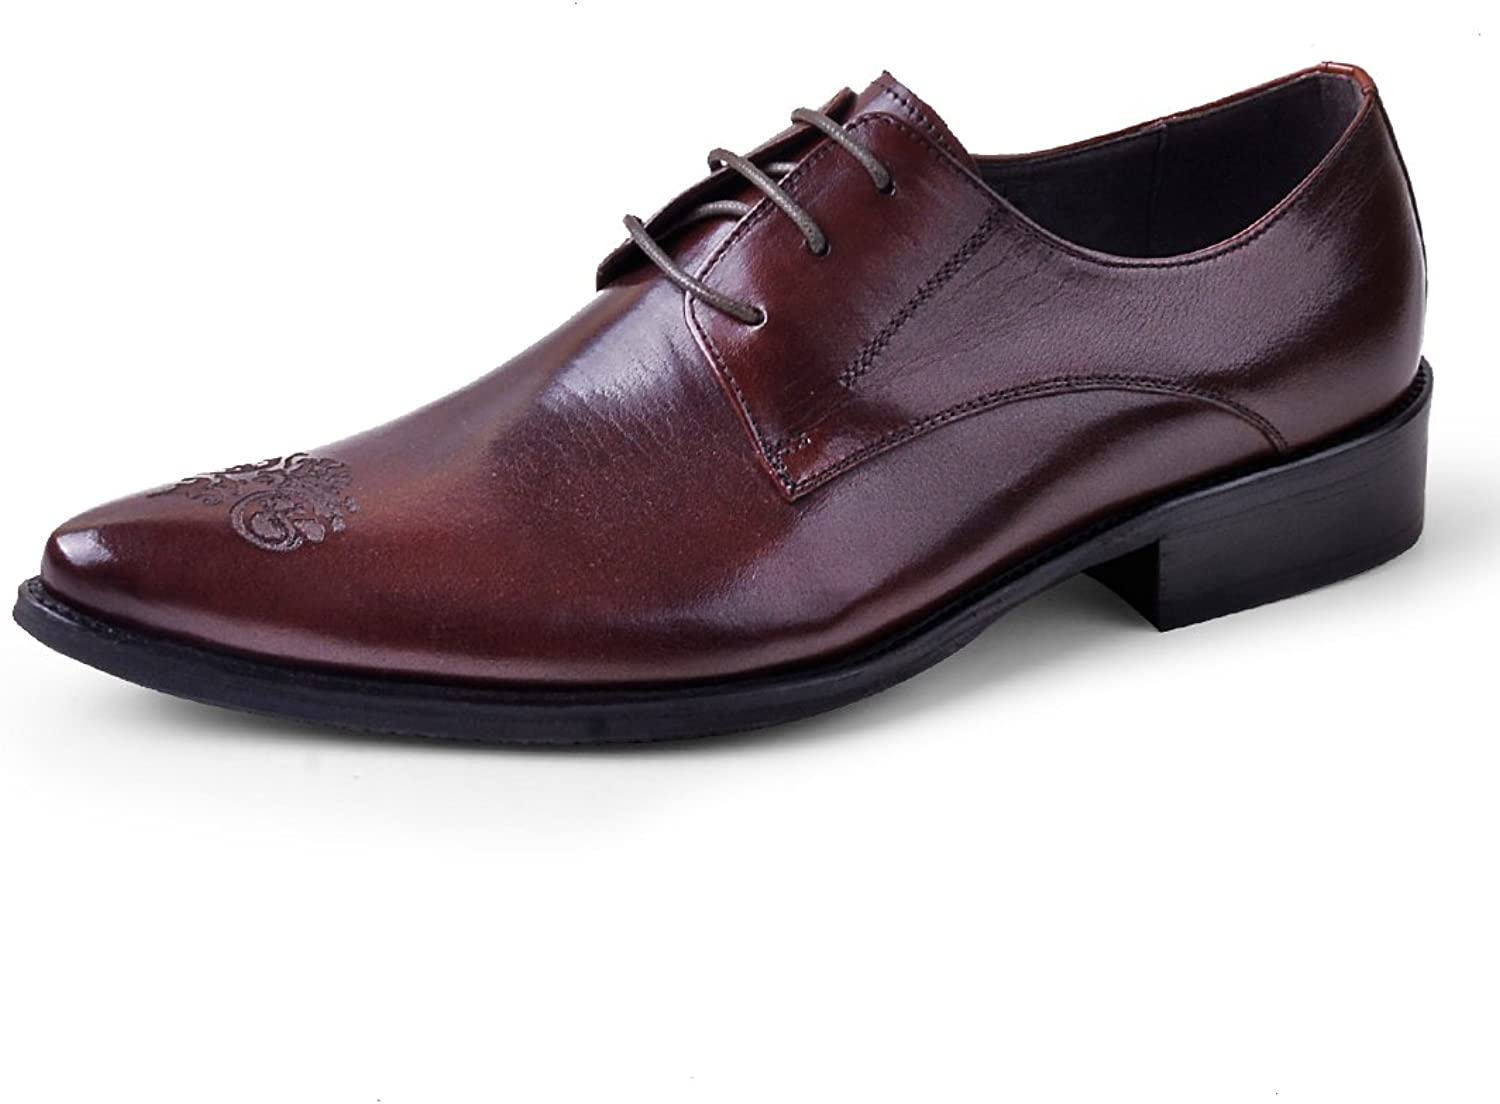 XLY Business Oxford shoes England Genuine Leather breathable men's shoes Brock carved dress shoes men's summer shoes